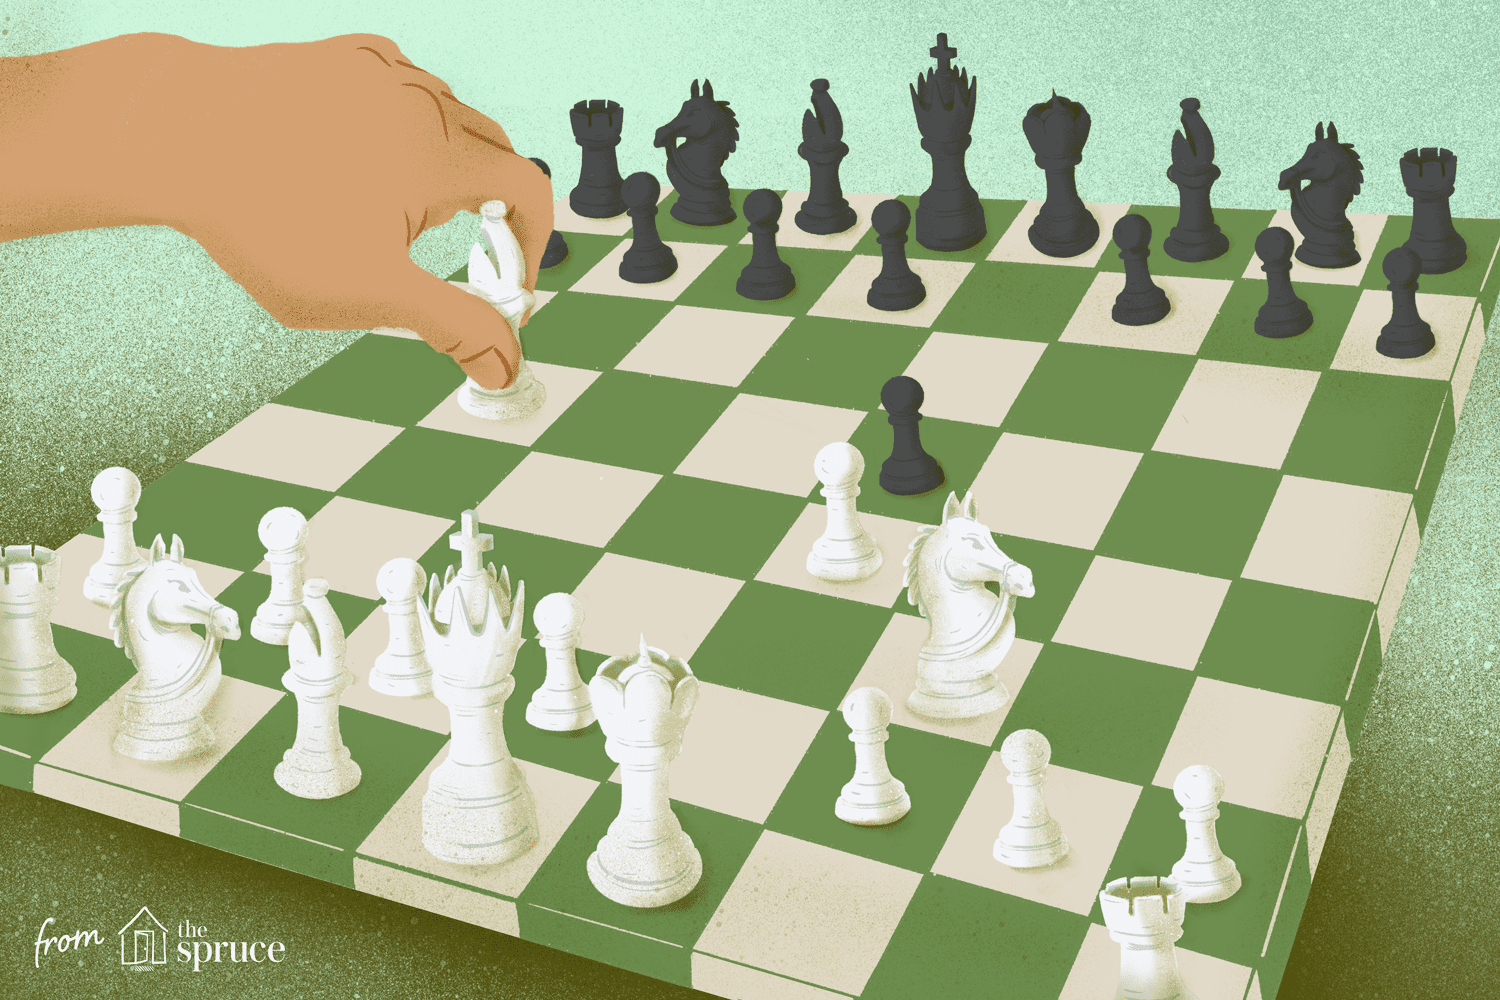 These Opening Moves Are the Most Popular in Chess